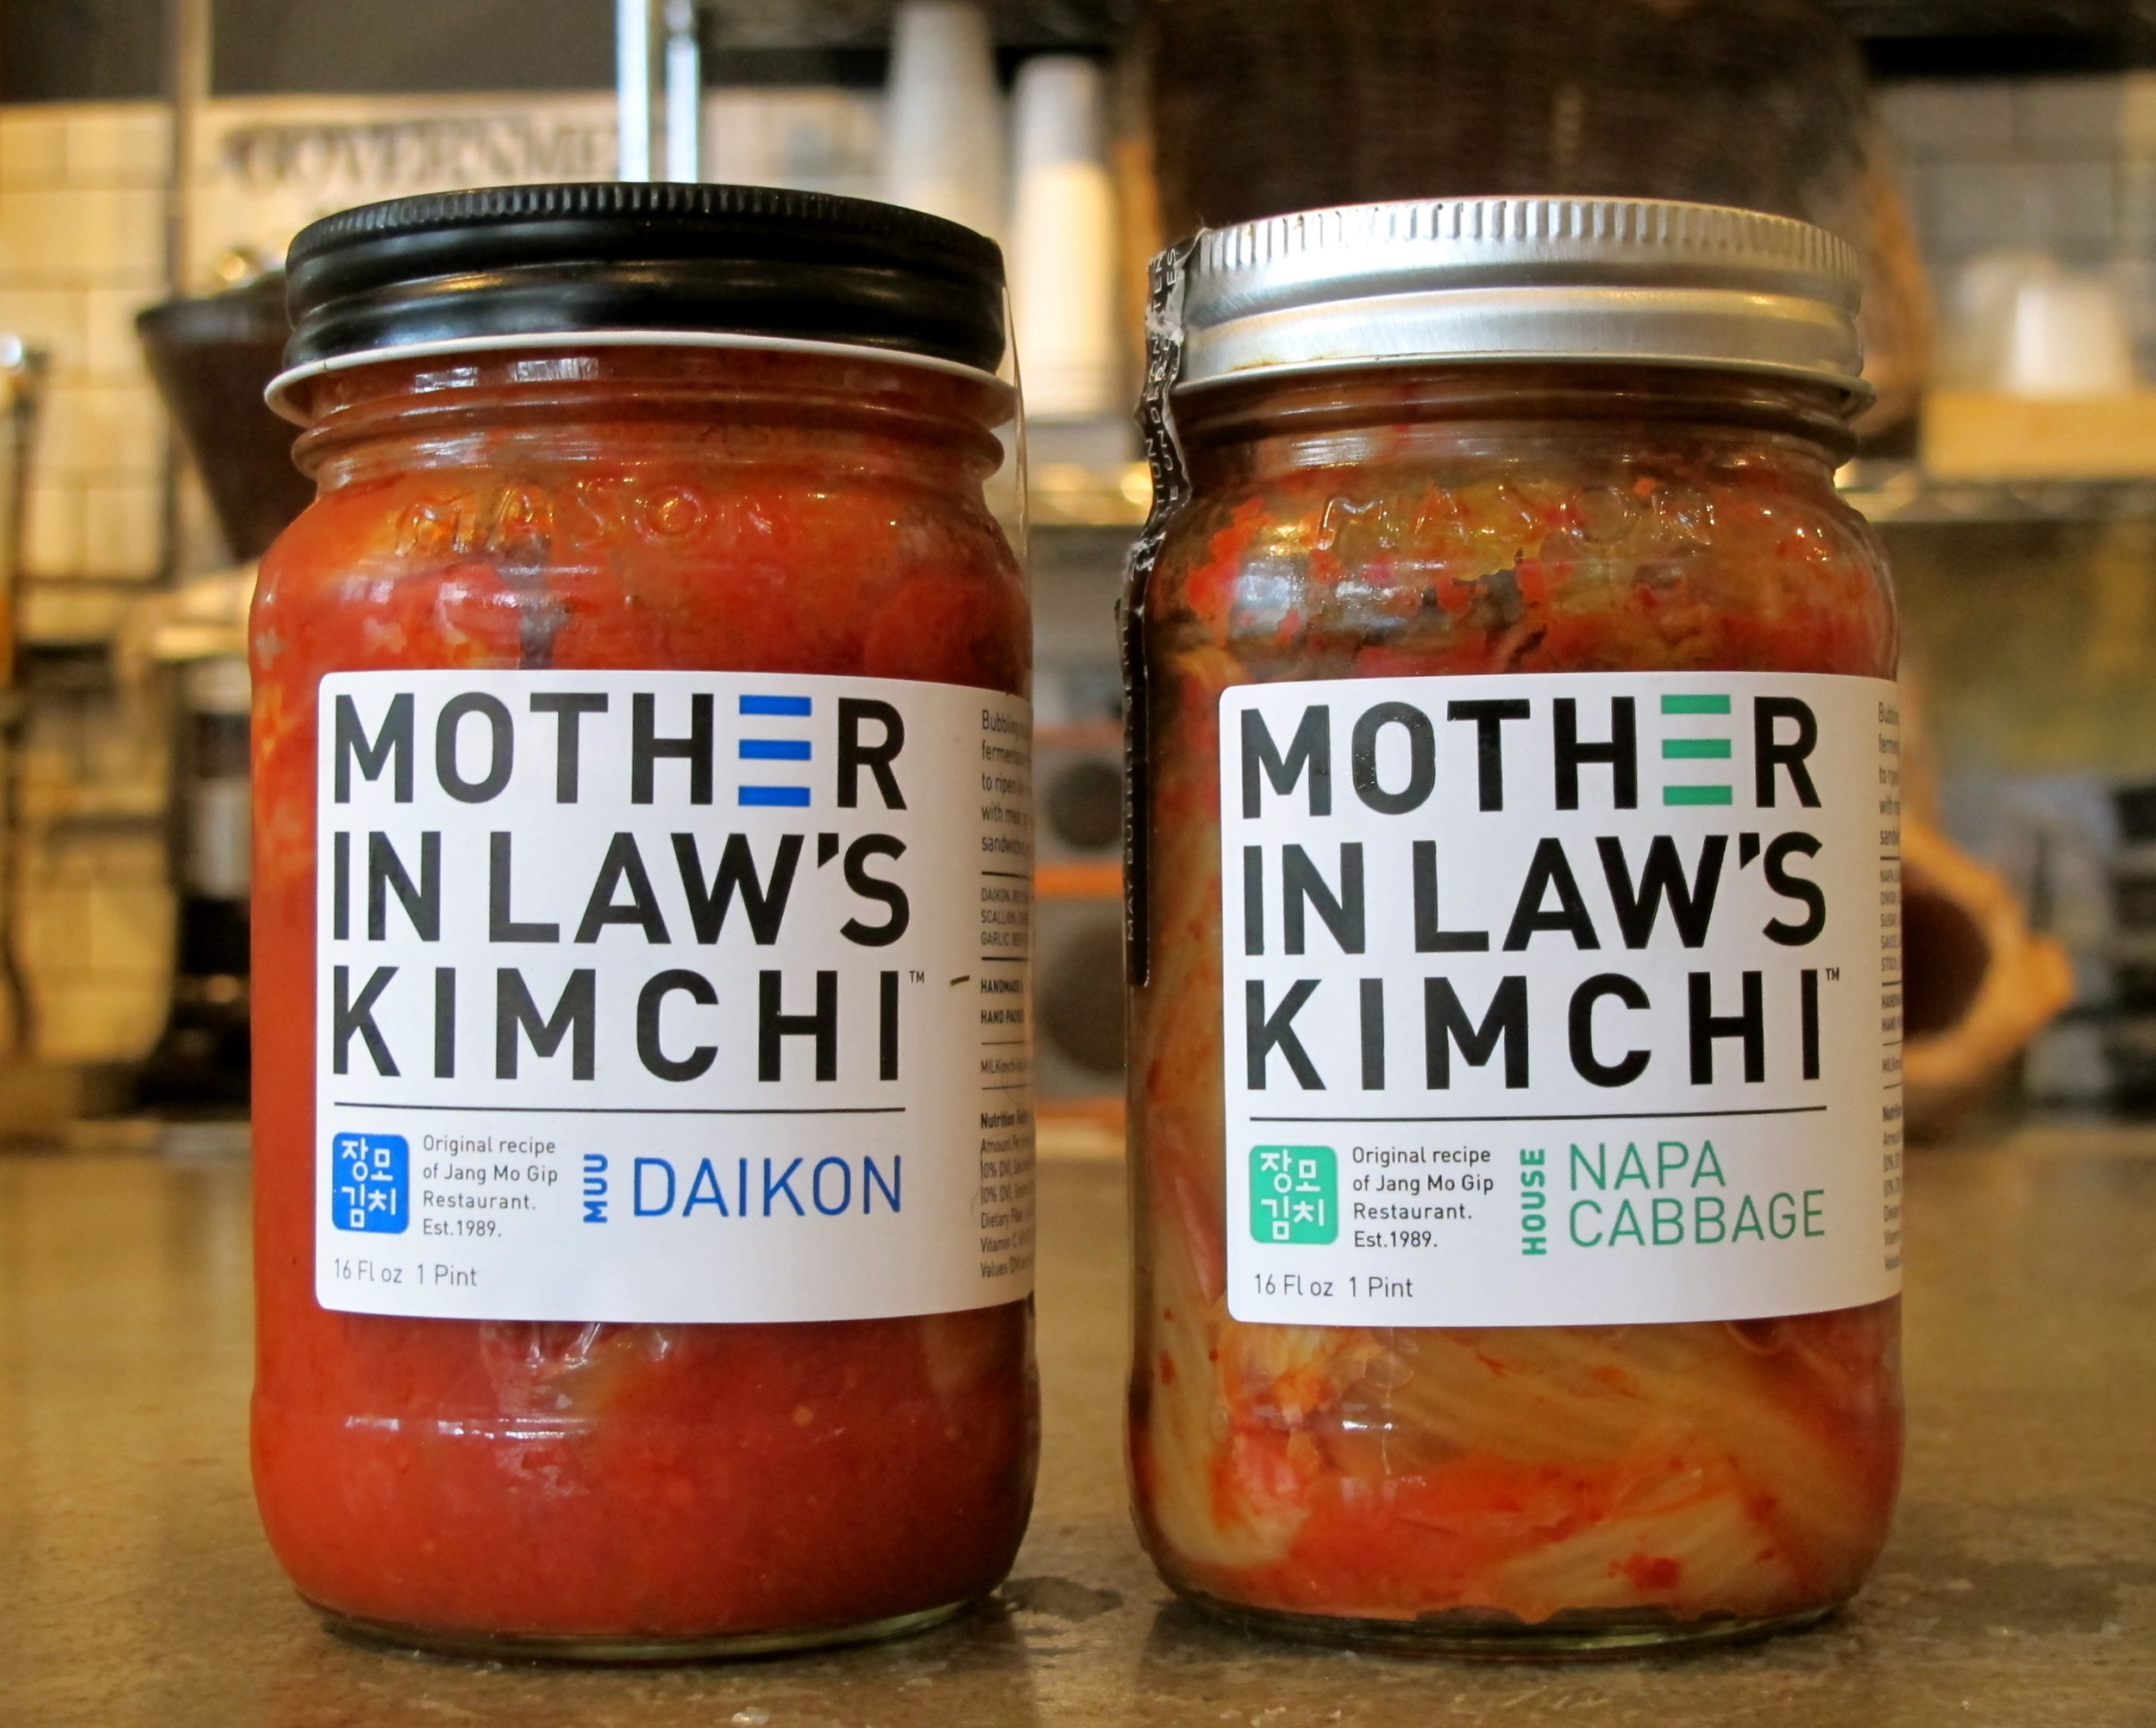 Mother In Law's Kimchi